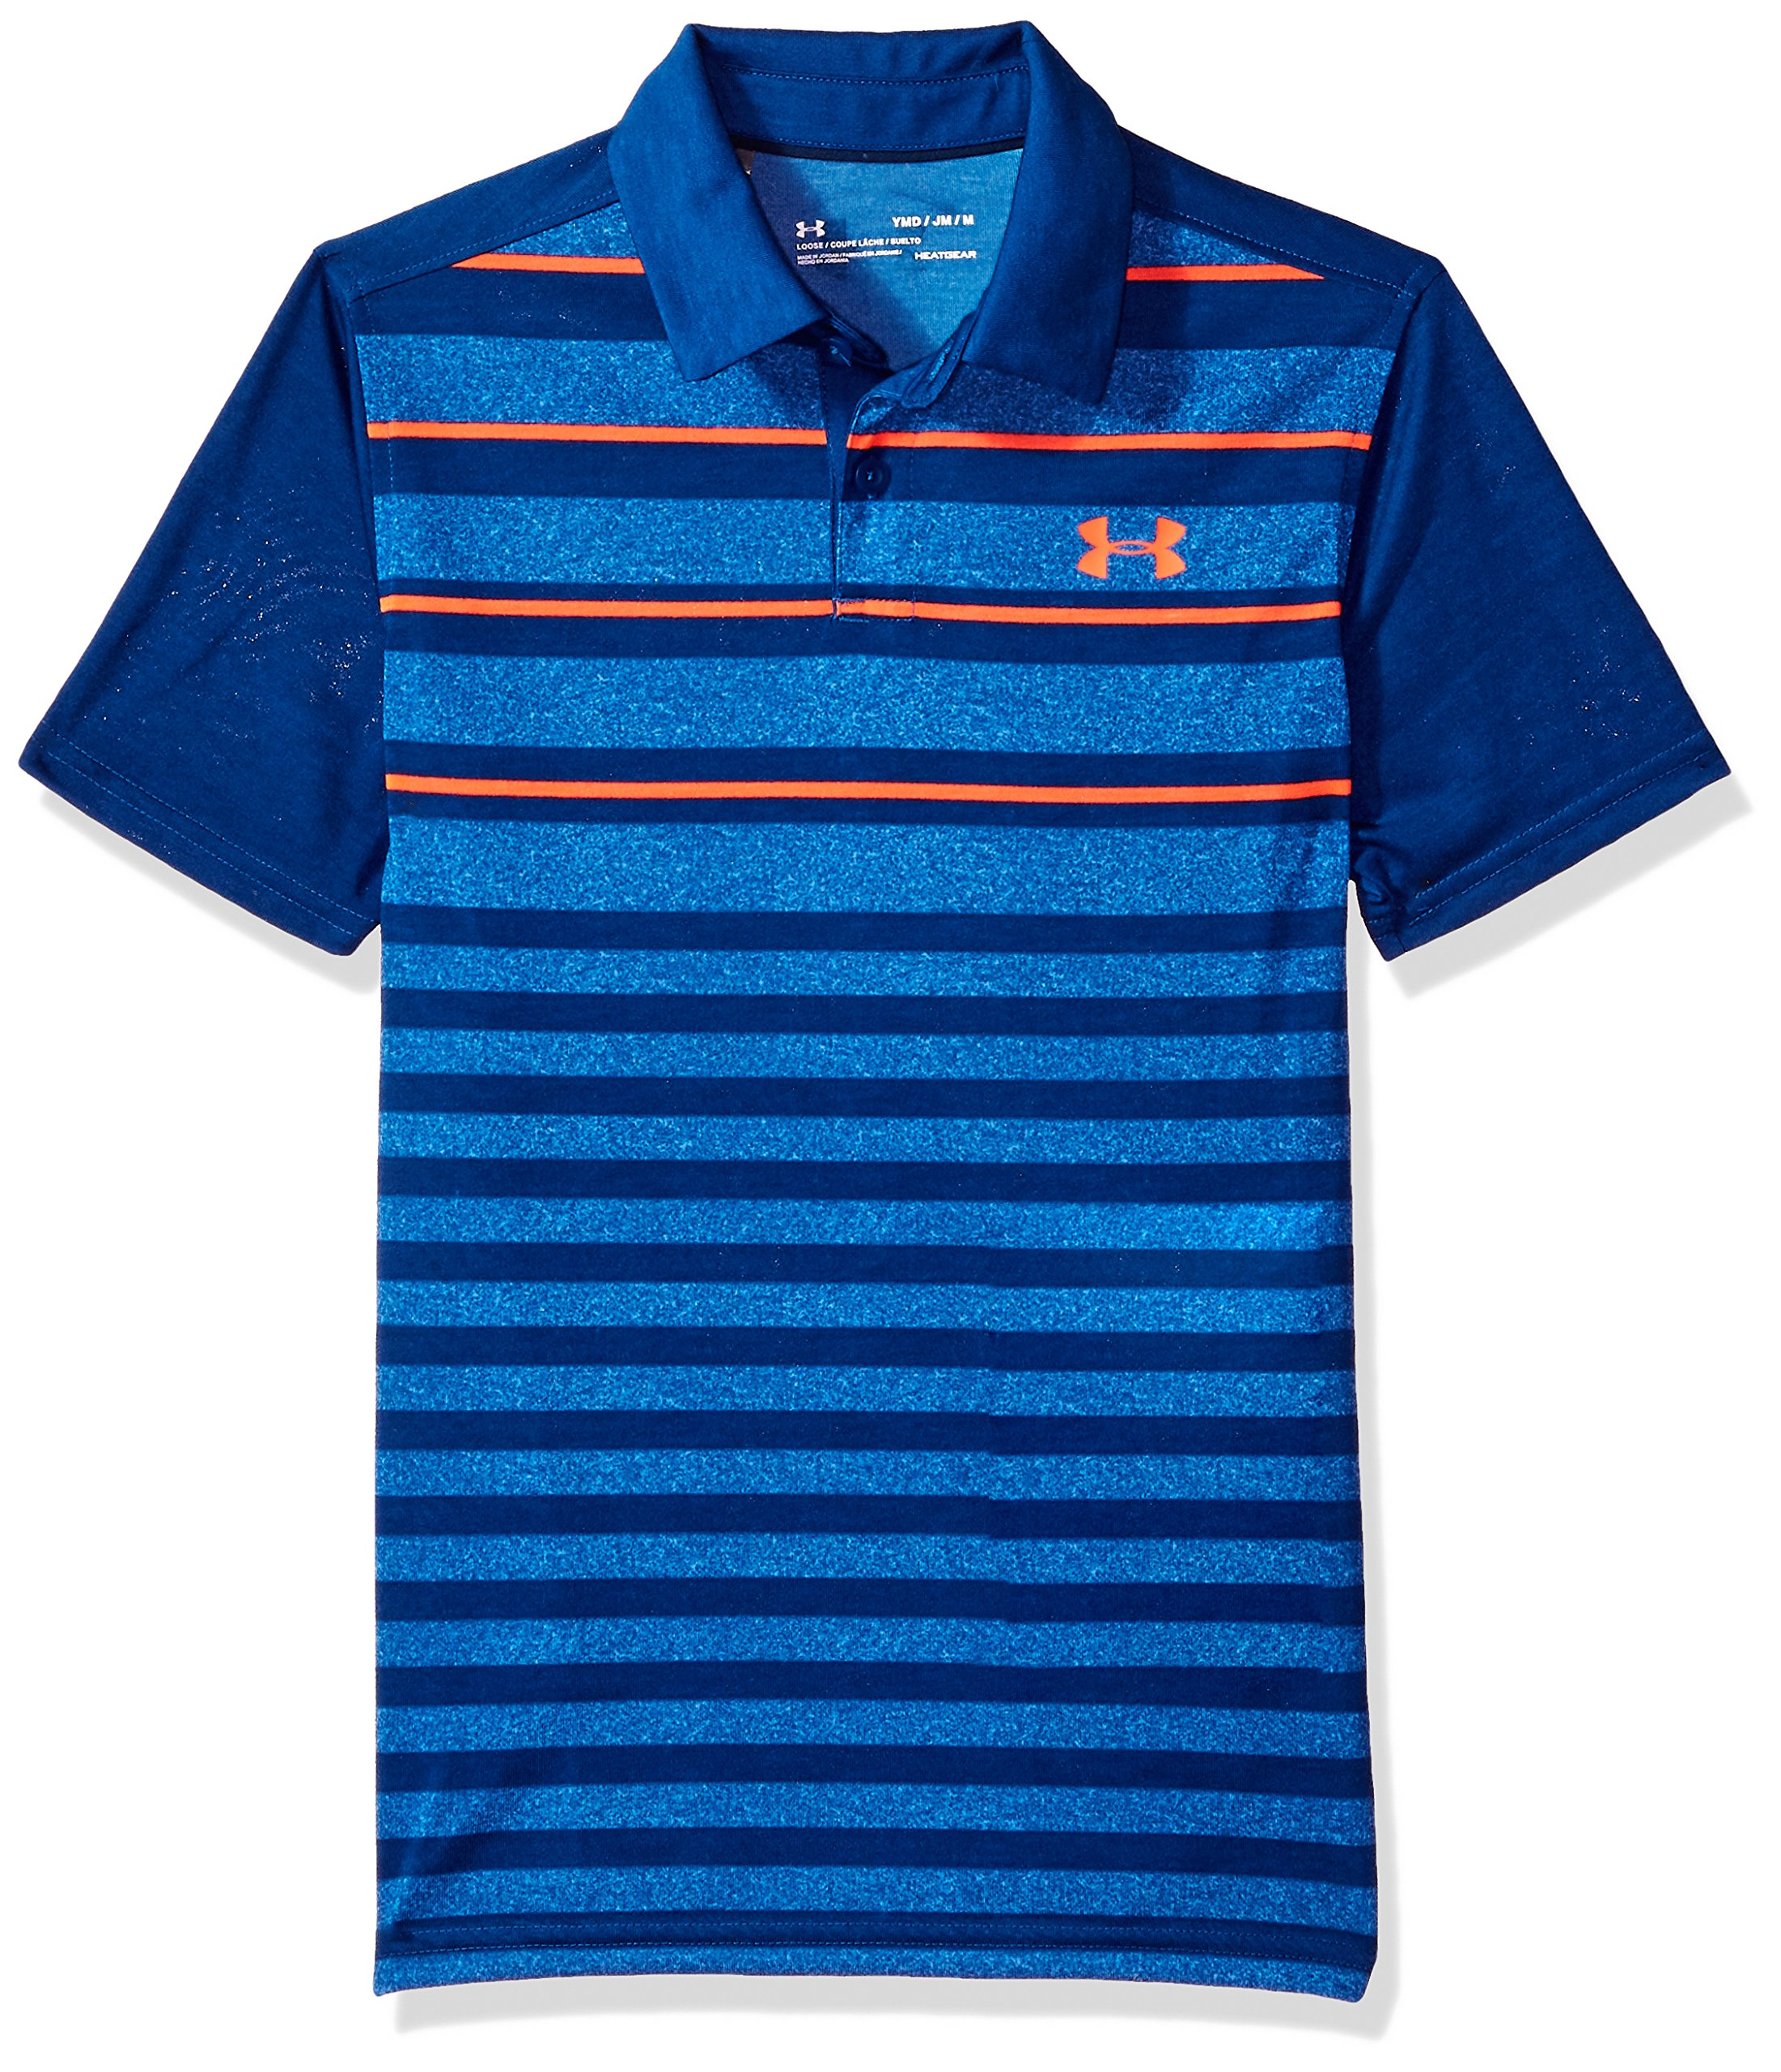 Under Armour Boys' Threadborne Bunker Polo, Moroccan Blue (487)/Neon Coral, Youth X-Small by Under Armour